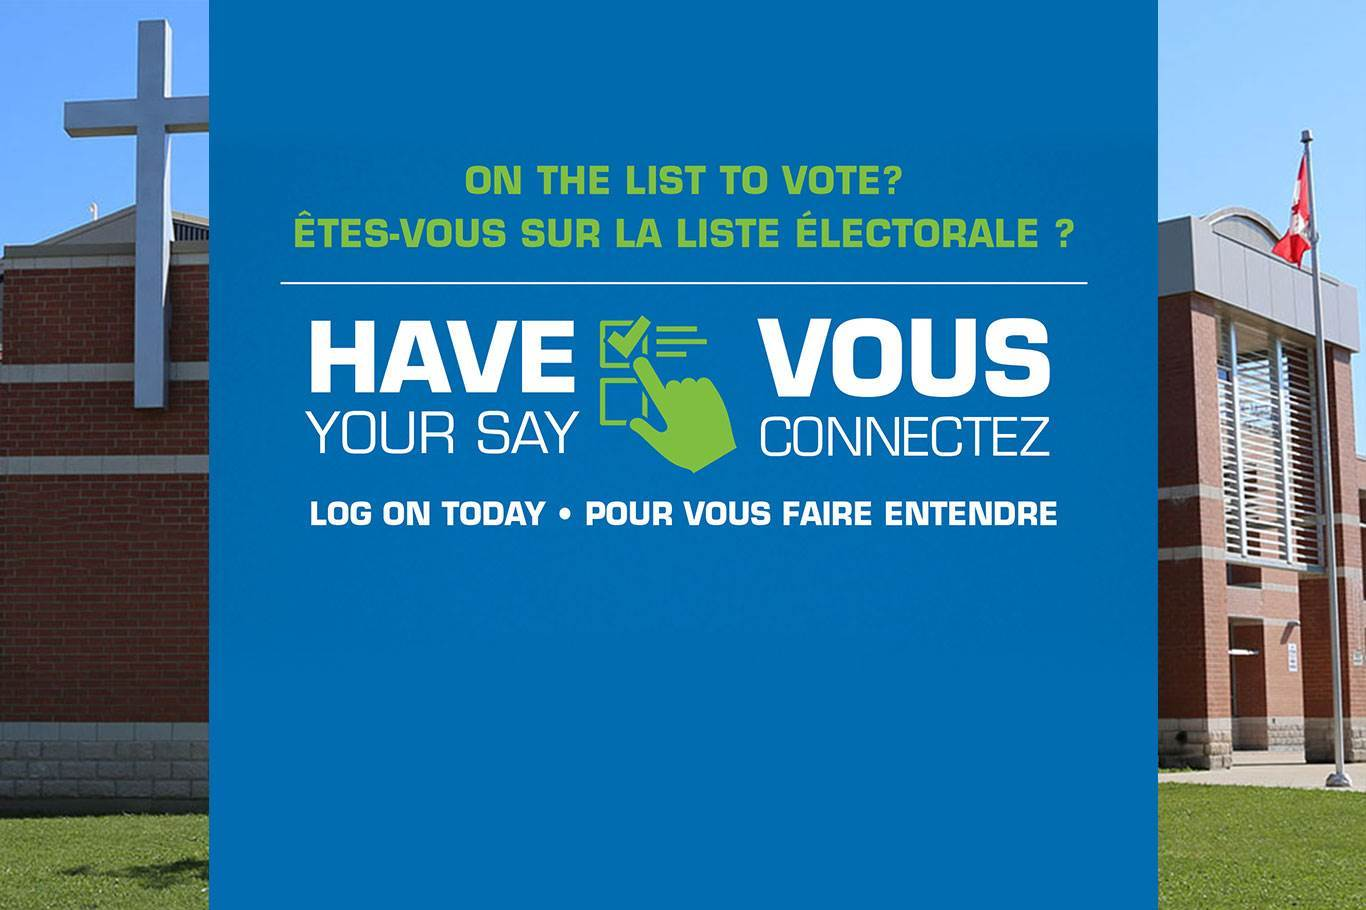 On October 22, cast your vote for your Catholic school trustee